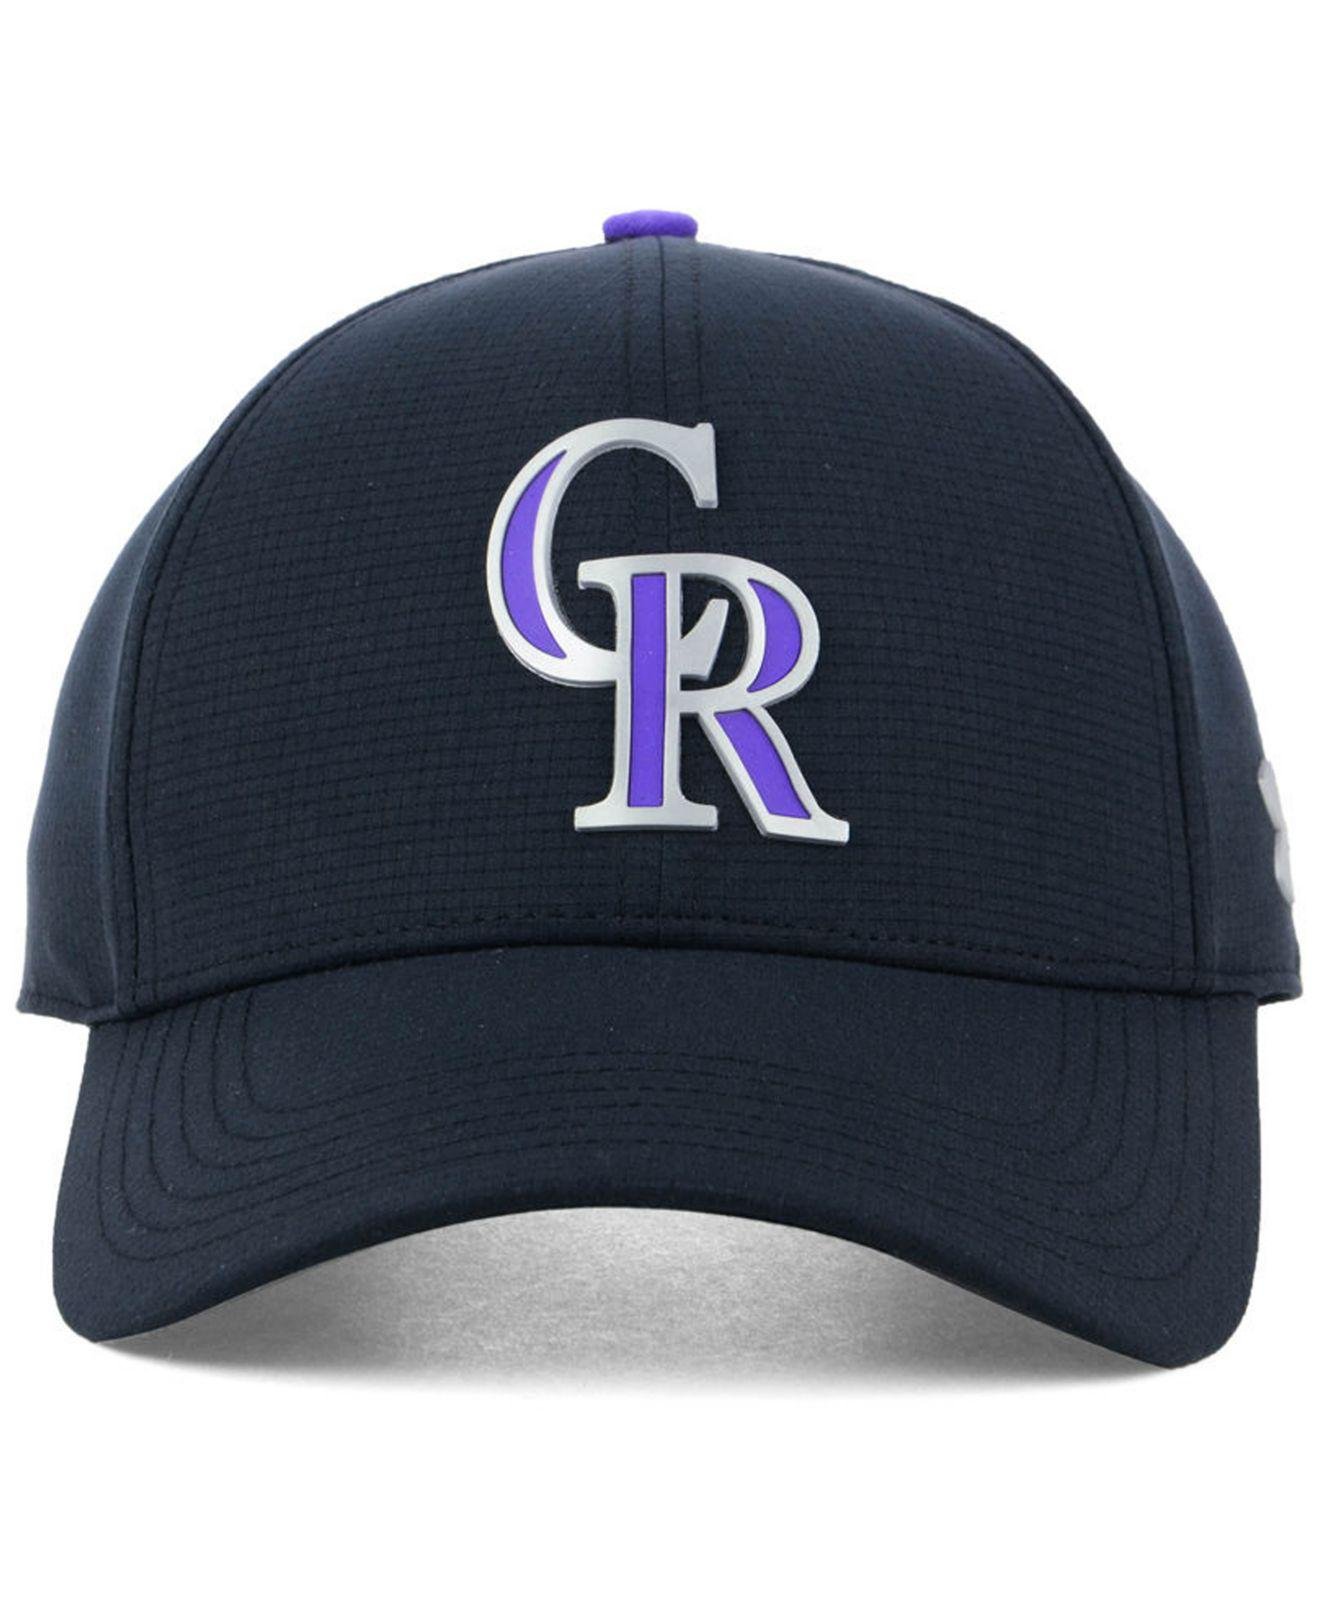 befc82a1156 ... promo code for lyst under armour colorado rockies driver cap in black  for men ccf4e 318fe